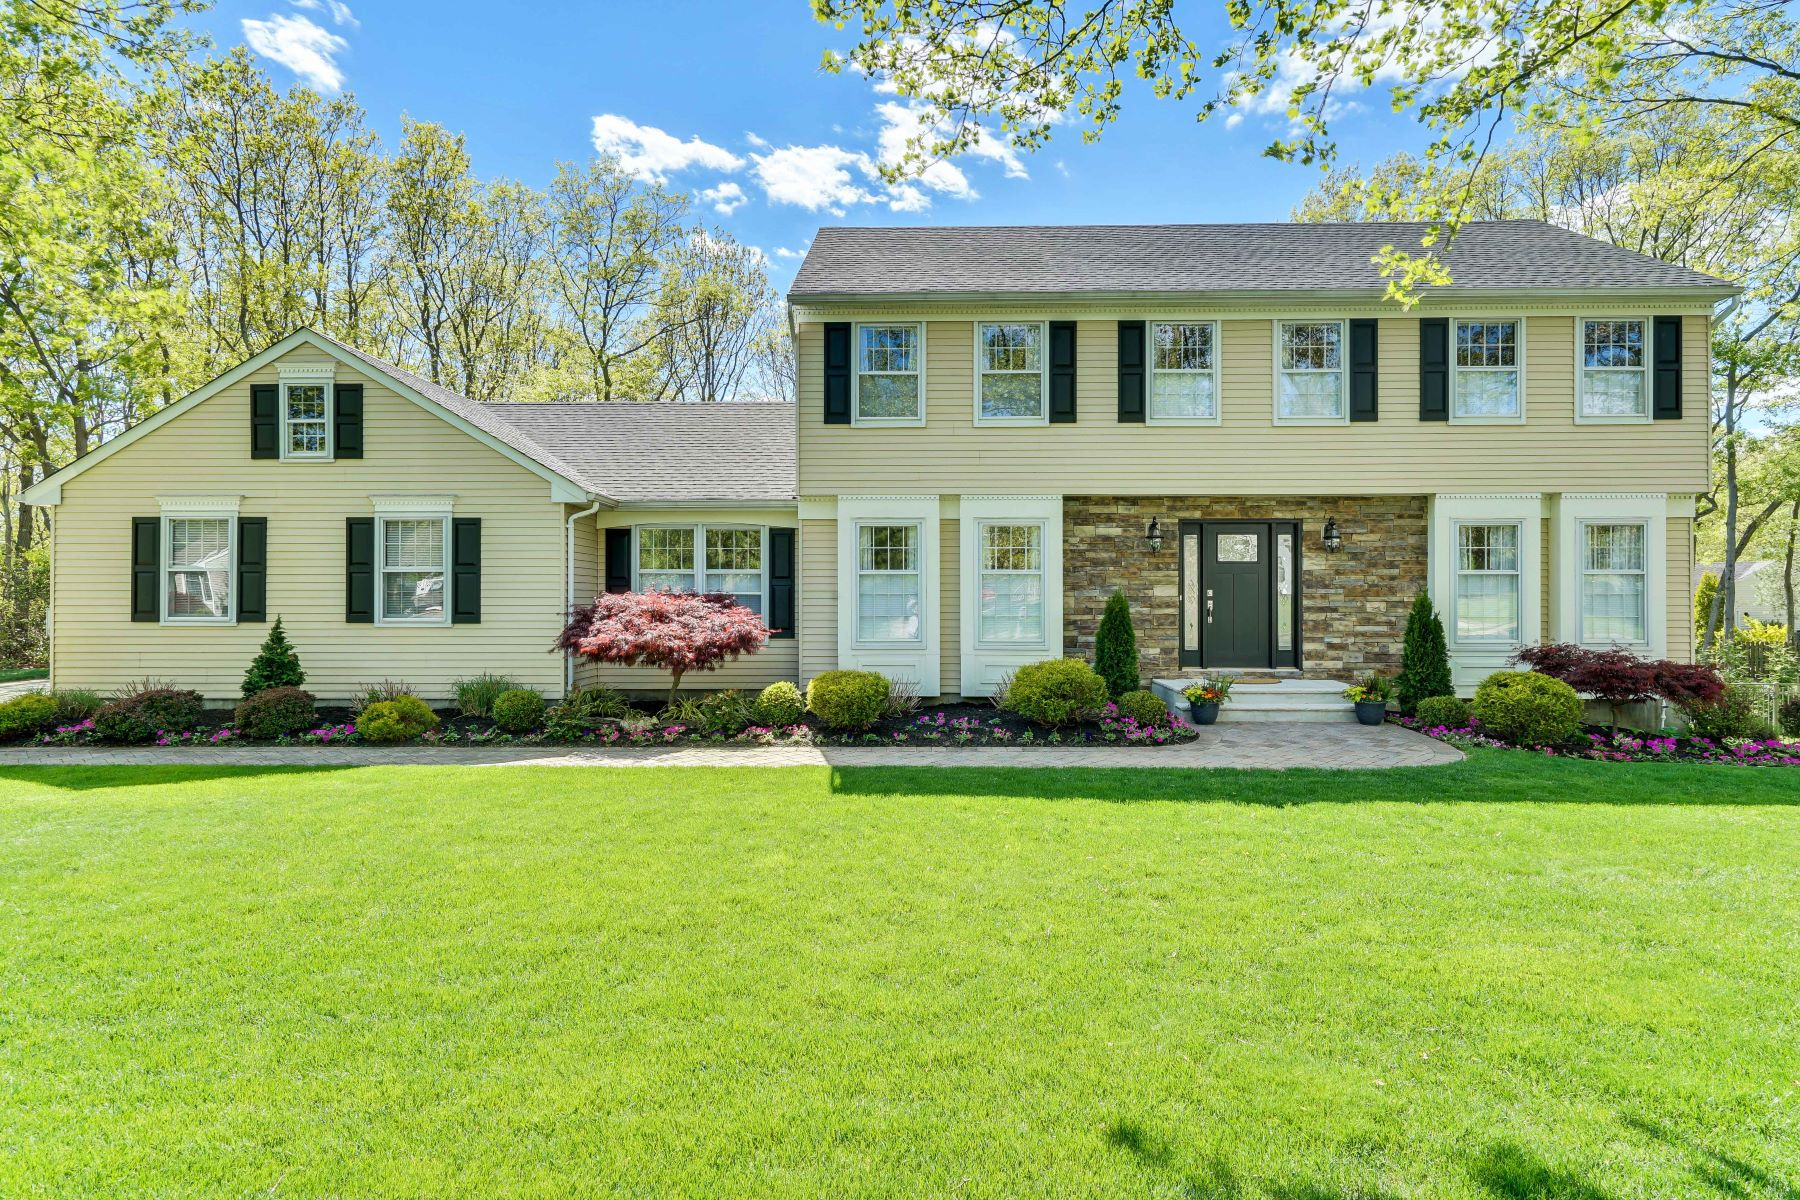 Single Family Home for Sale at Updated Colonial in South Wall 2531 Chalet Dr Wall, New Jersey, 08736 United States